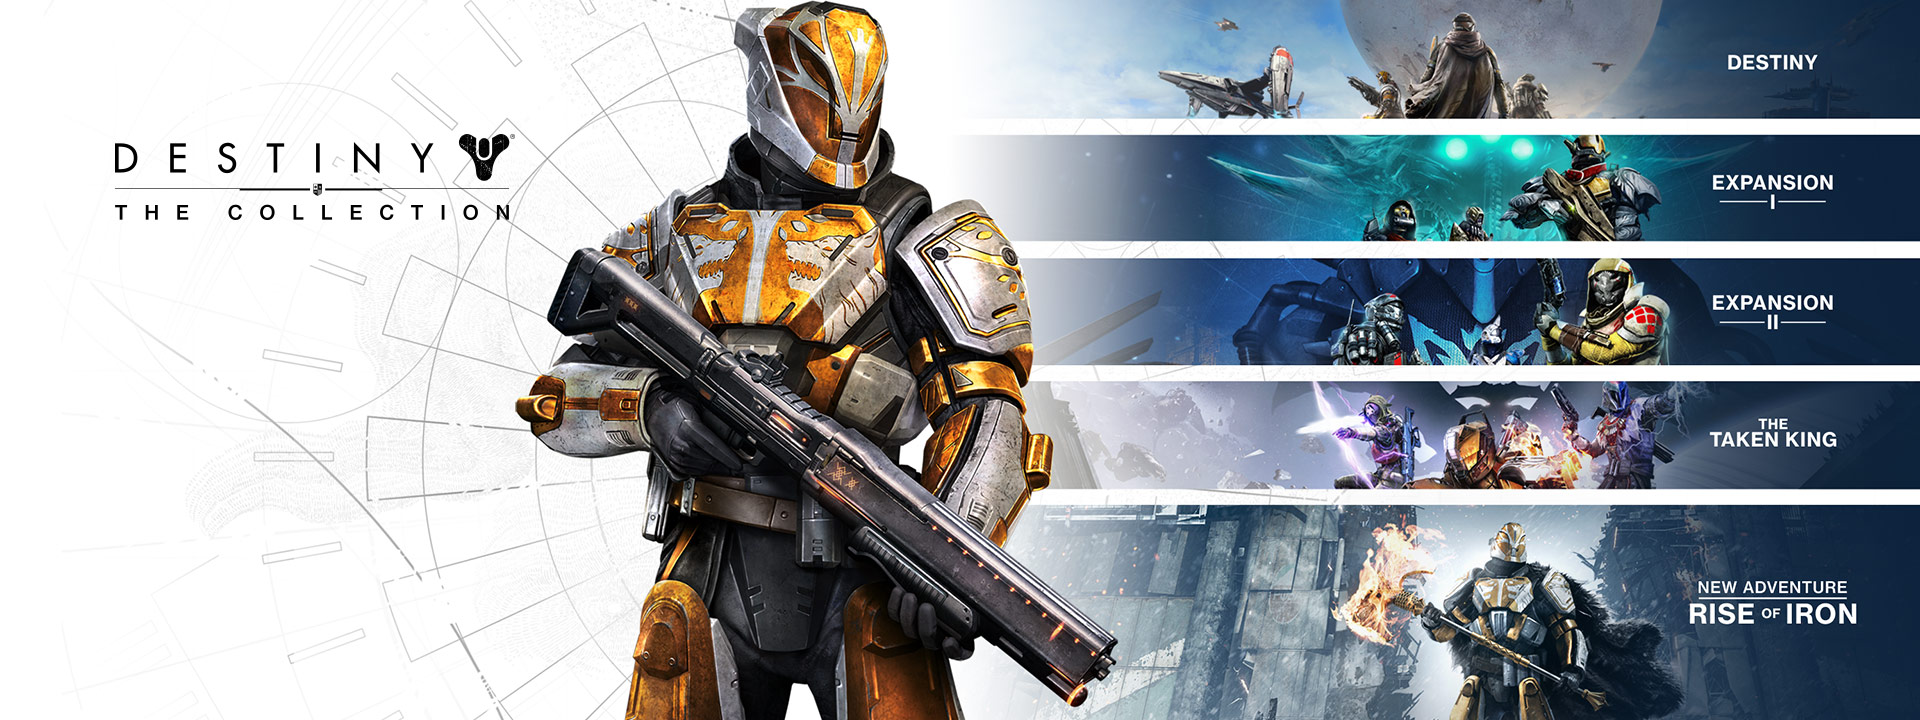 Destiny png freeuse download Destiny | Xbox png freeuse download